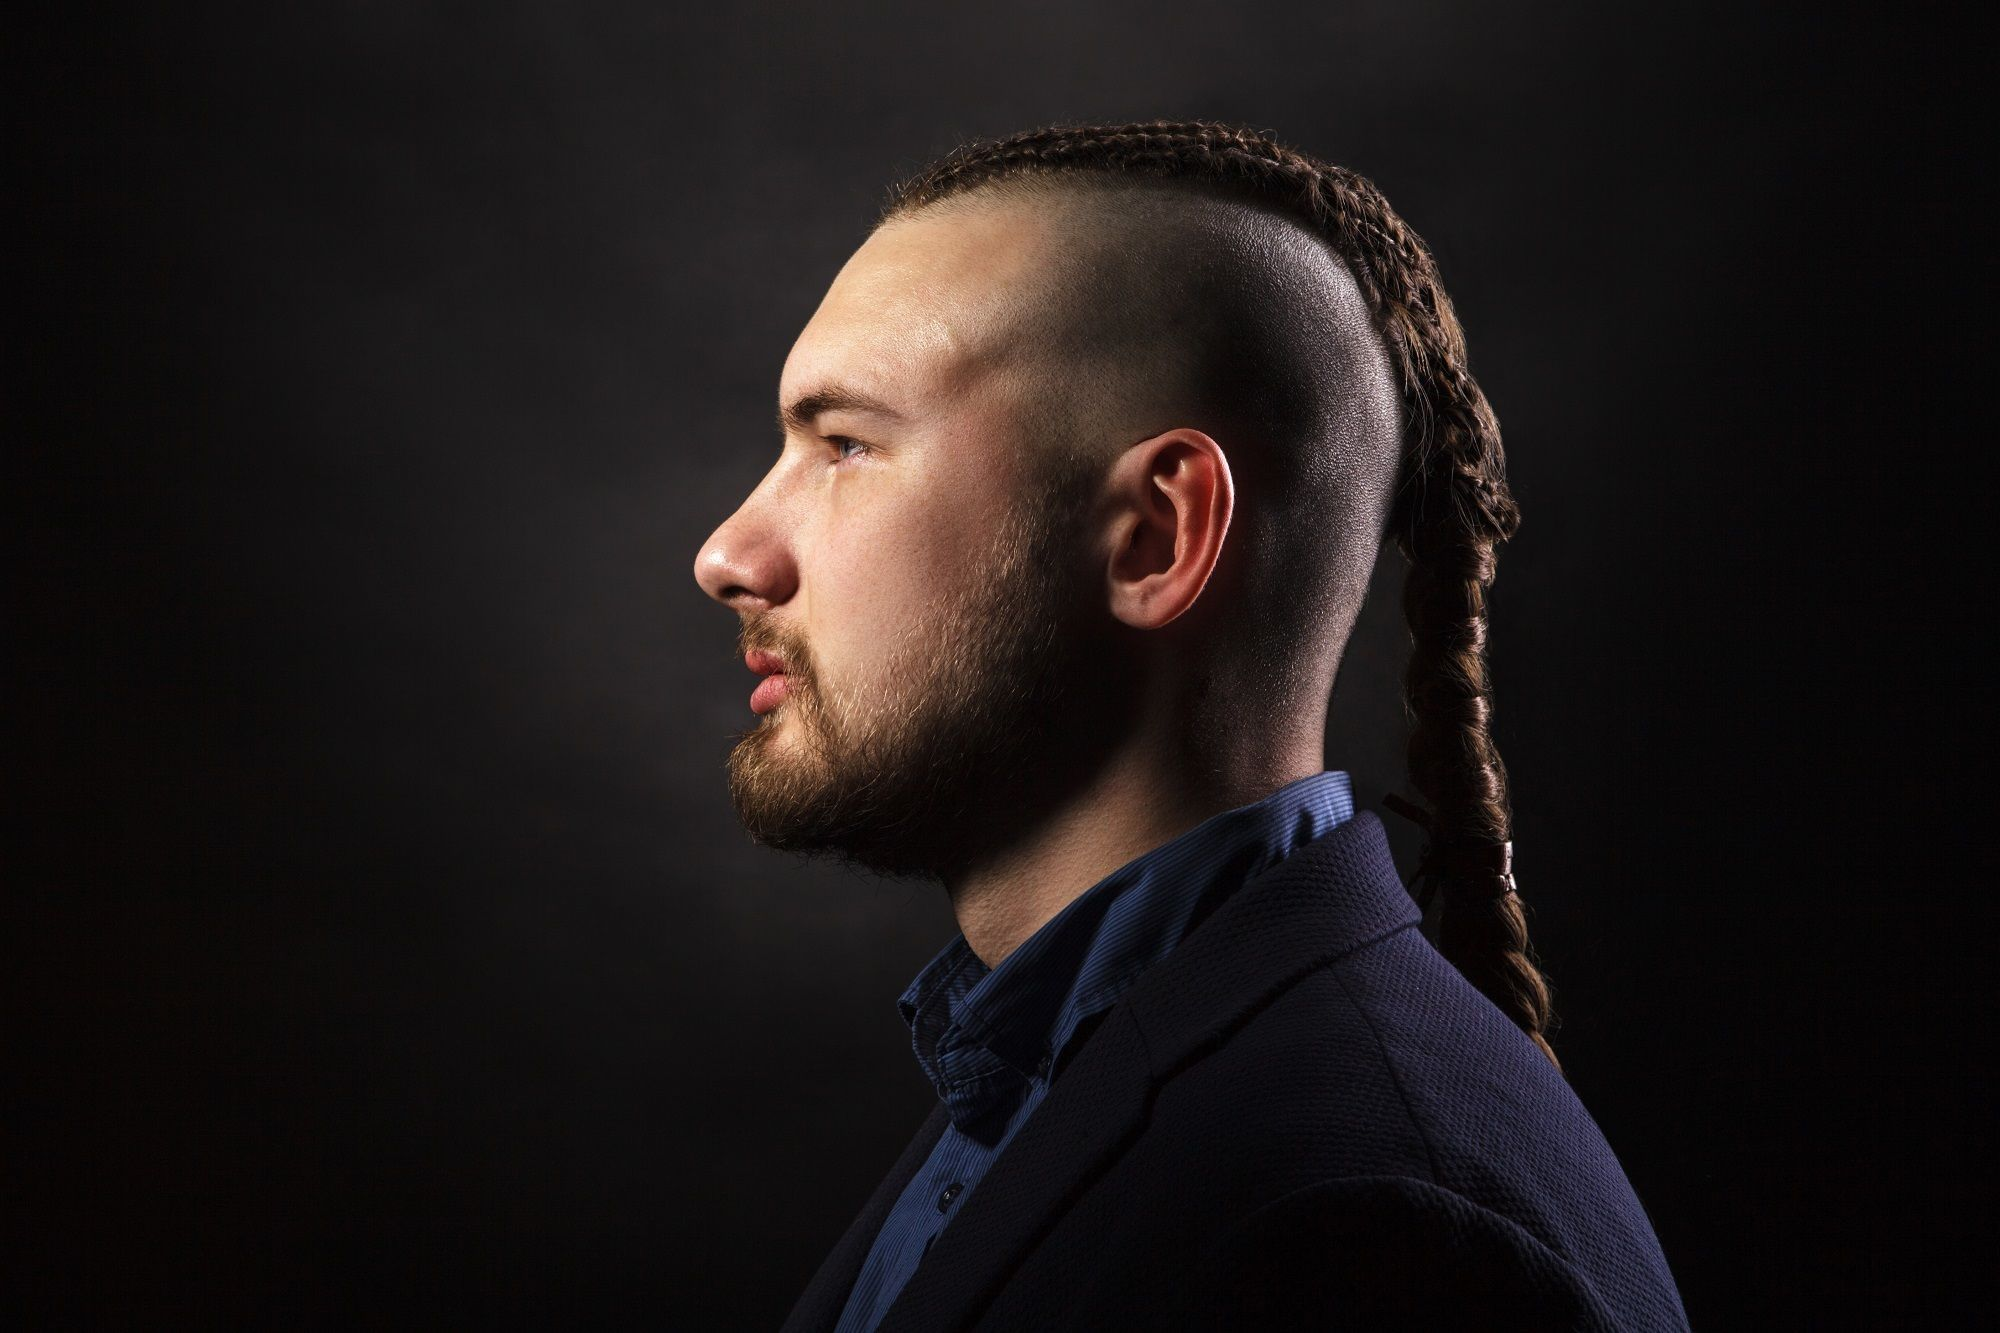 Man ponytail: Profile shot of a man with undercut dreadlock ponytail against a dark background